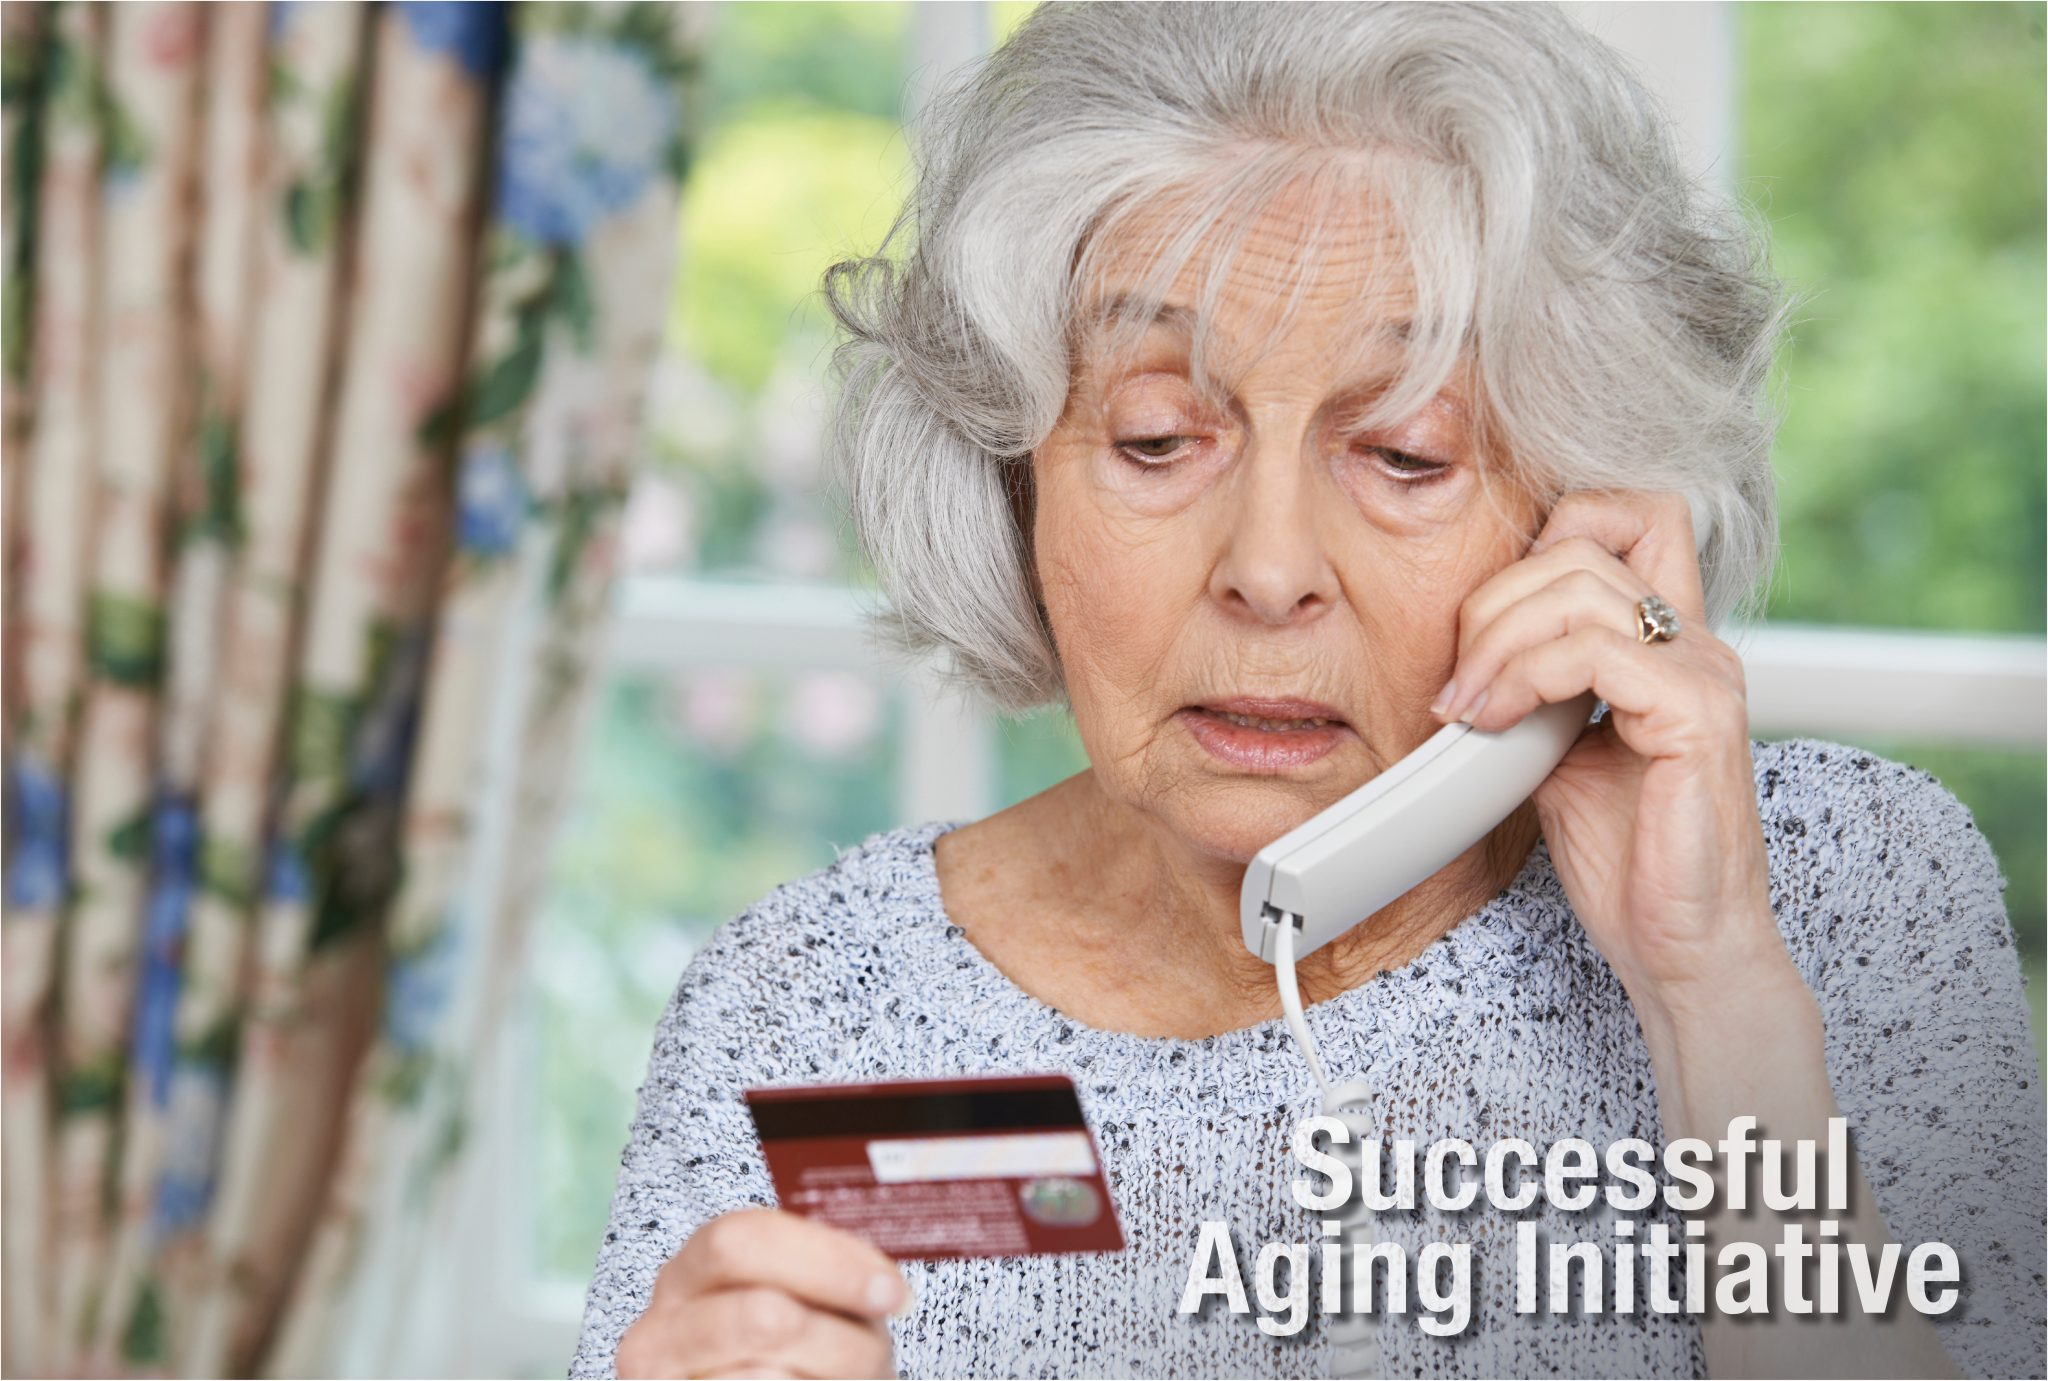 Senior adult on the telephone holding a credit card